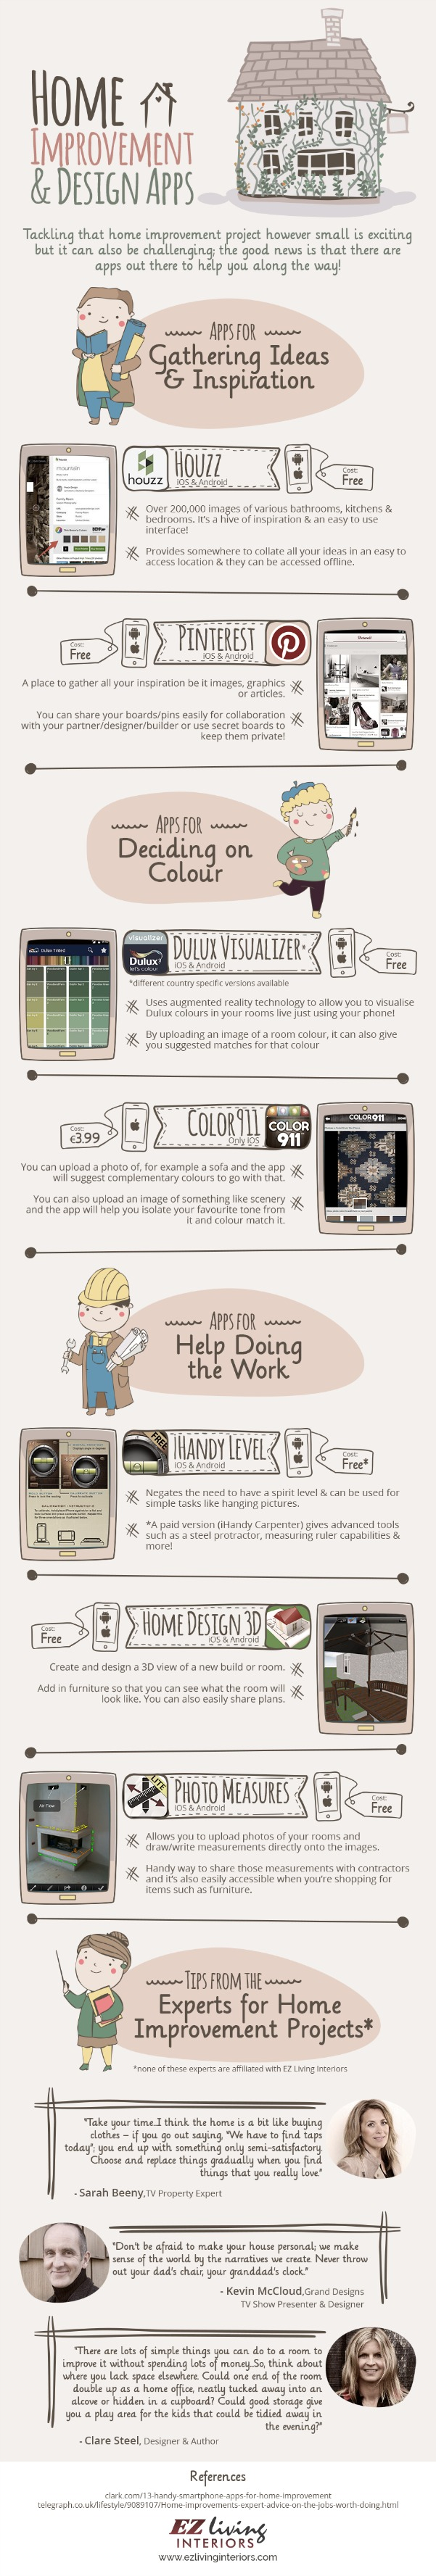 7 Helpful Home Improvement And Design Apps Infographic